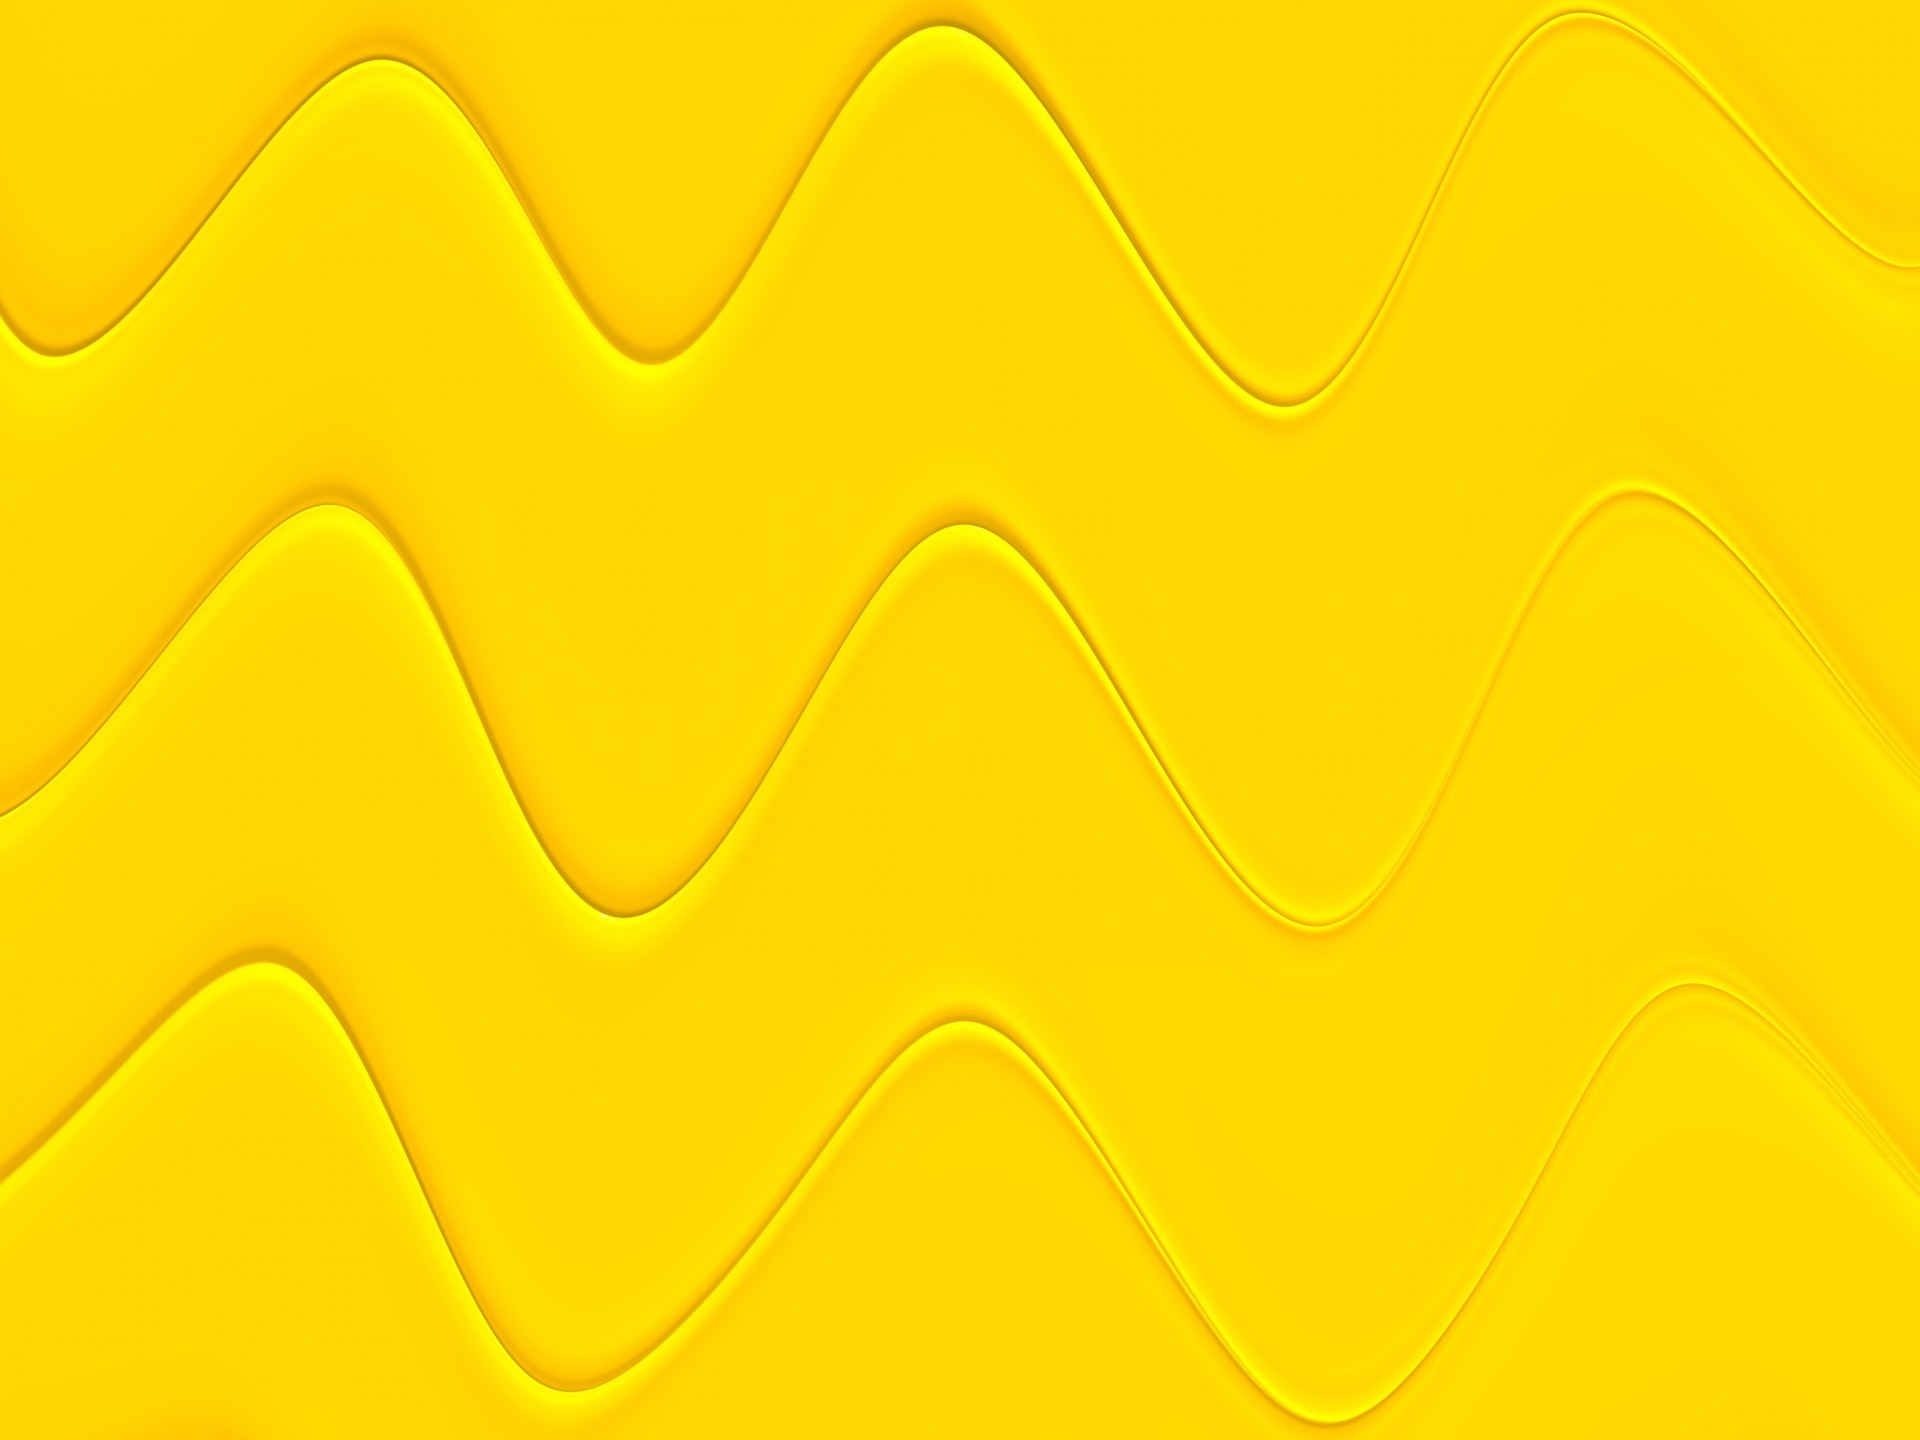 Neon Yellow Background 183 ① Wallpapertag